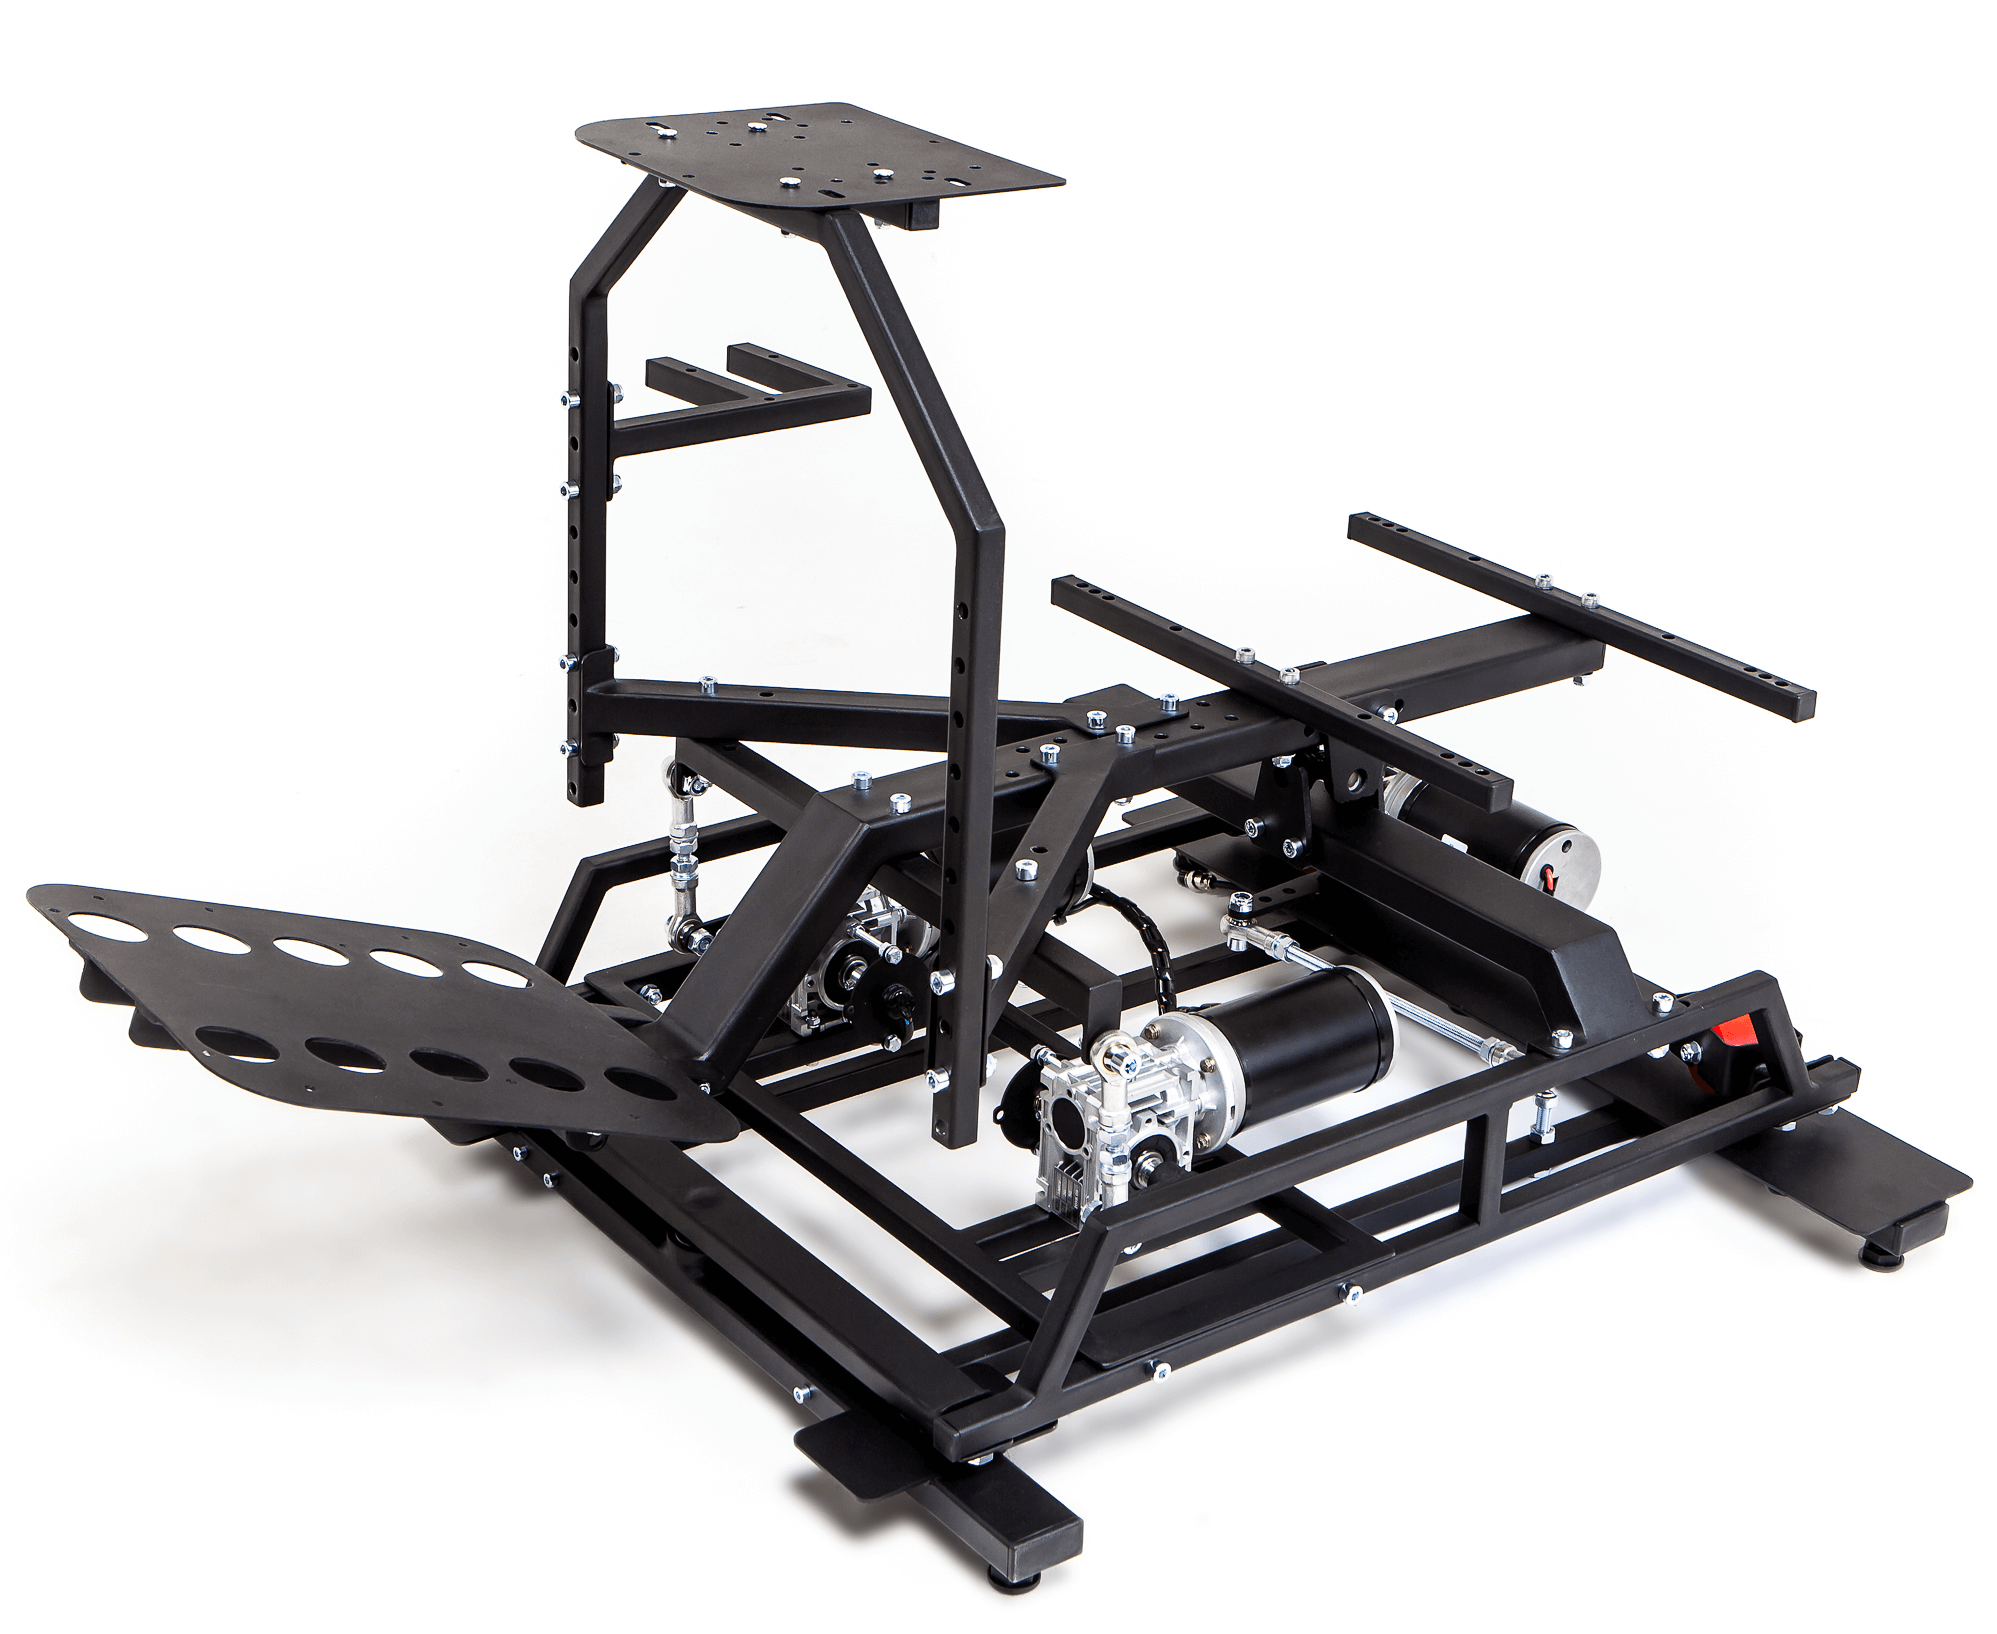 Full Motion Simulator 236 Axis Platforms For Pc Home Flight And Built Diy 3 Dof Movement Cockpit Control Characteristic Value Degrees Of Freedom